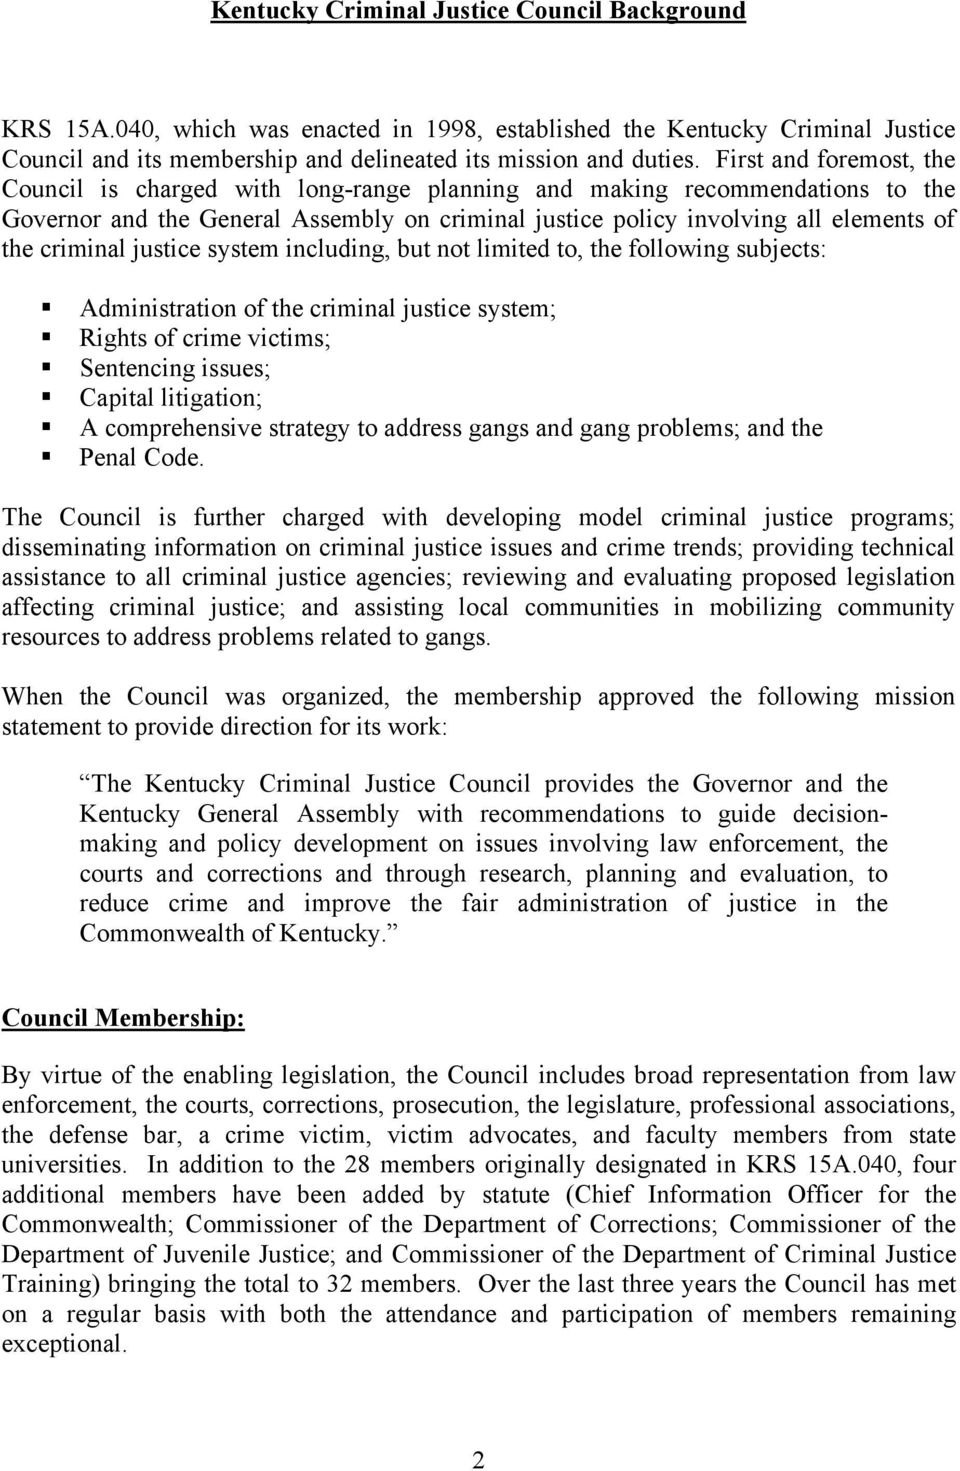 challenges of leading groups in a criminal justice organization Challenges arising from leadership itself real leadership makes great demands on people as a leader, you are responsible for your group's vision and mission, for upholding a standard, often for being the group's representative to the rest of the world and its protector as well.